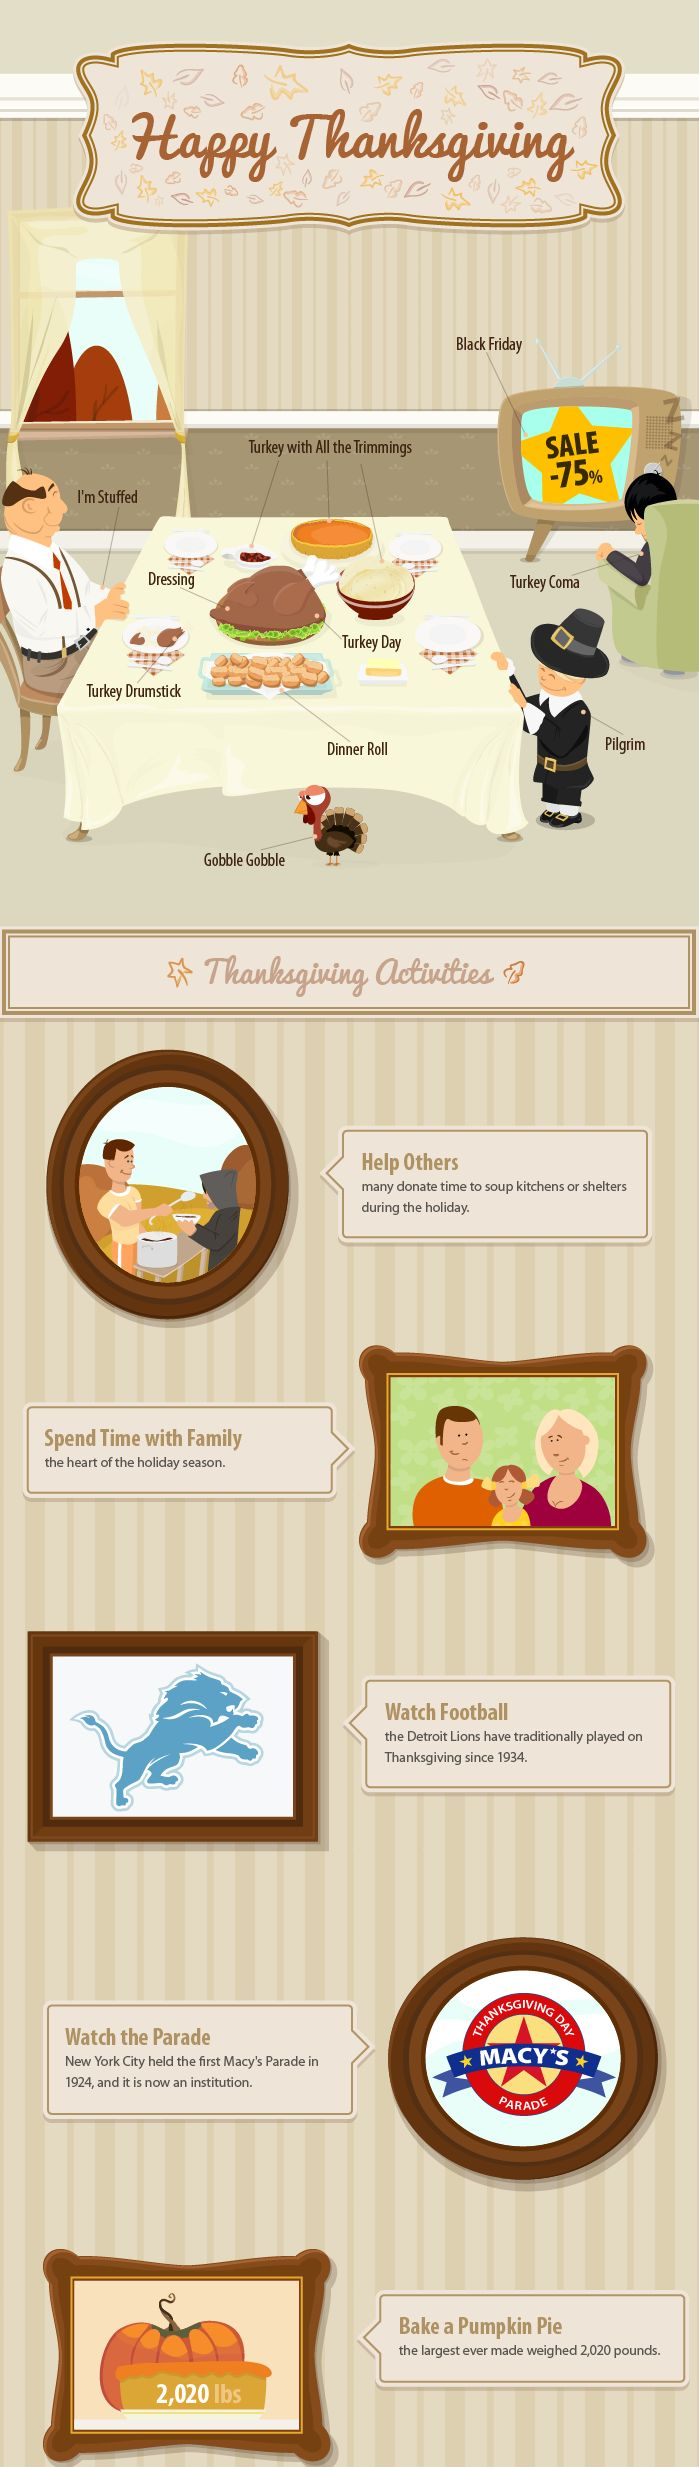 Thanksgiving is the first of the celebrations that kicks off the holiday season including Christmas and New Year. #ThanksGiving #Holiday #Season